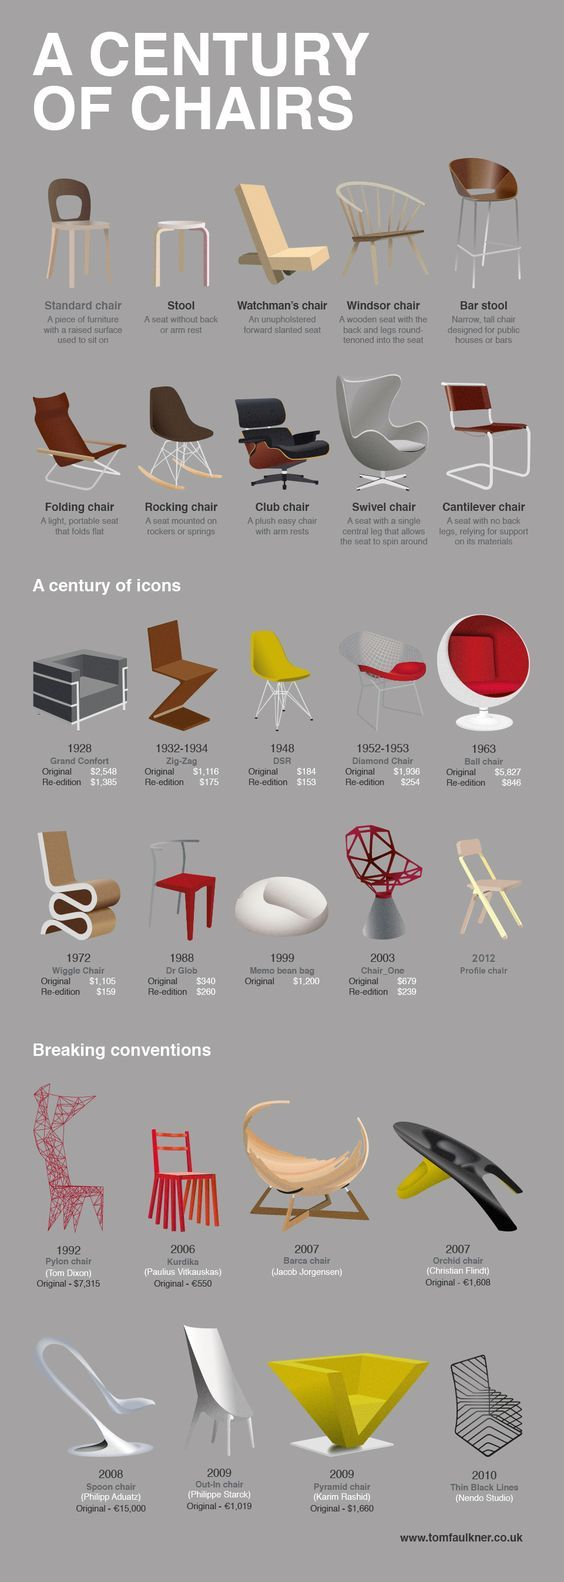 A brilliantly stylised and striking infographic showing the evolution of chair design Grand Confort to Aduatz's bizzare Spoon Chair and beyond. Whi